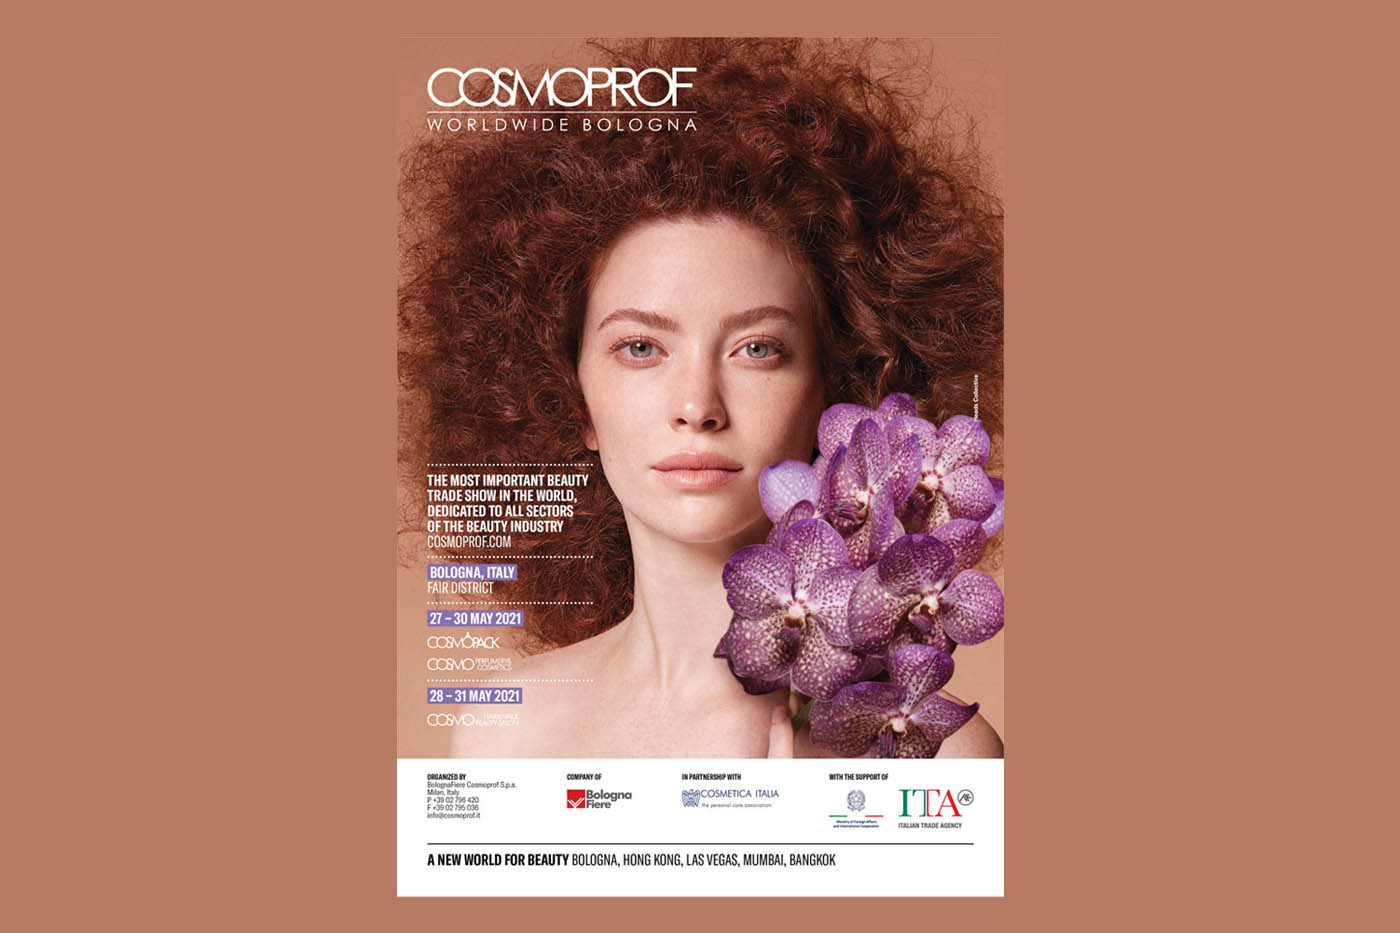 Cosmoprof Worldwide Bologna postponed to May 27-31, 2021